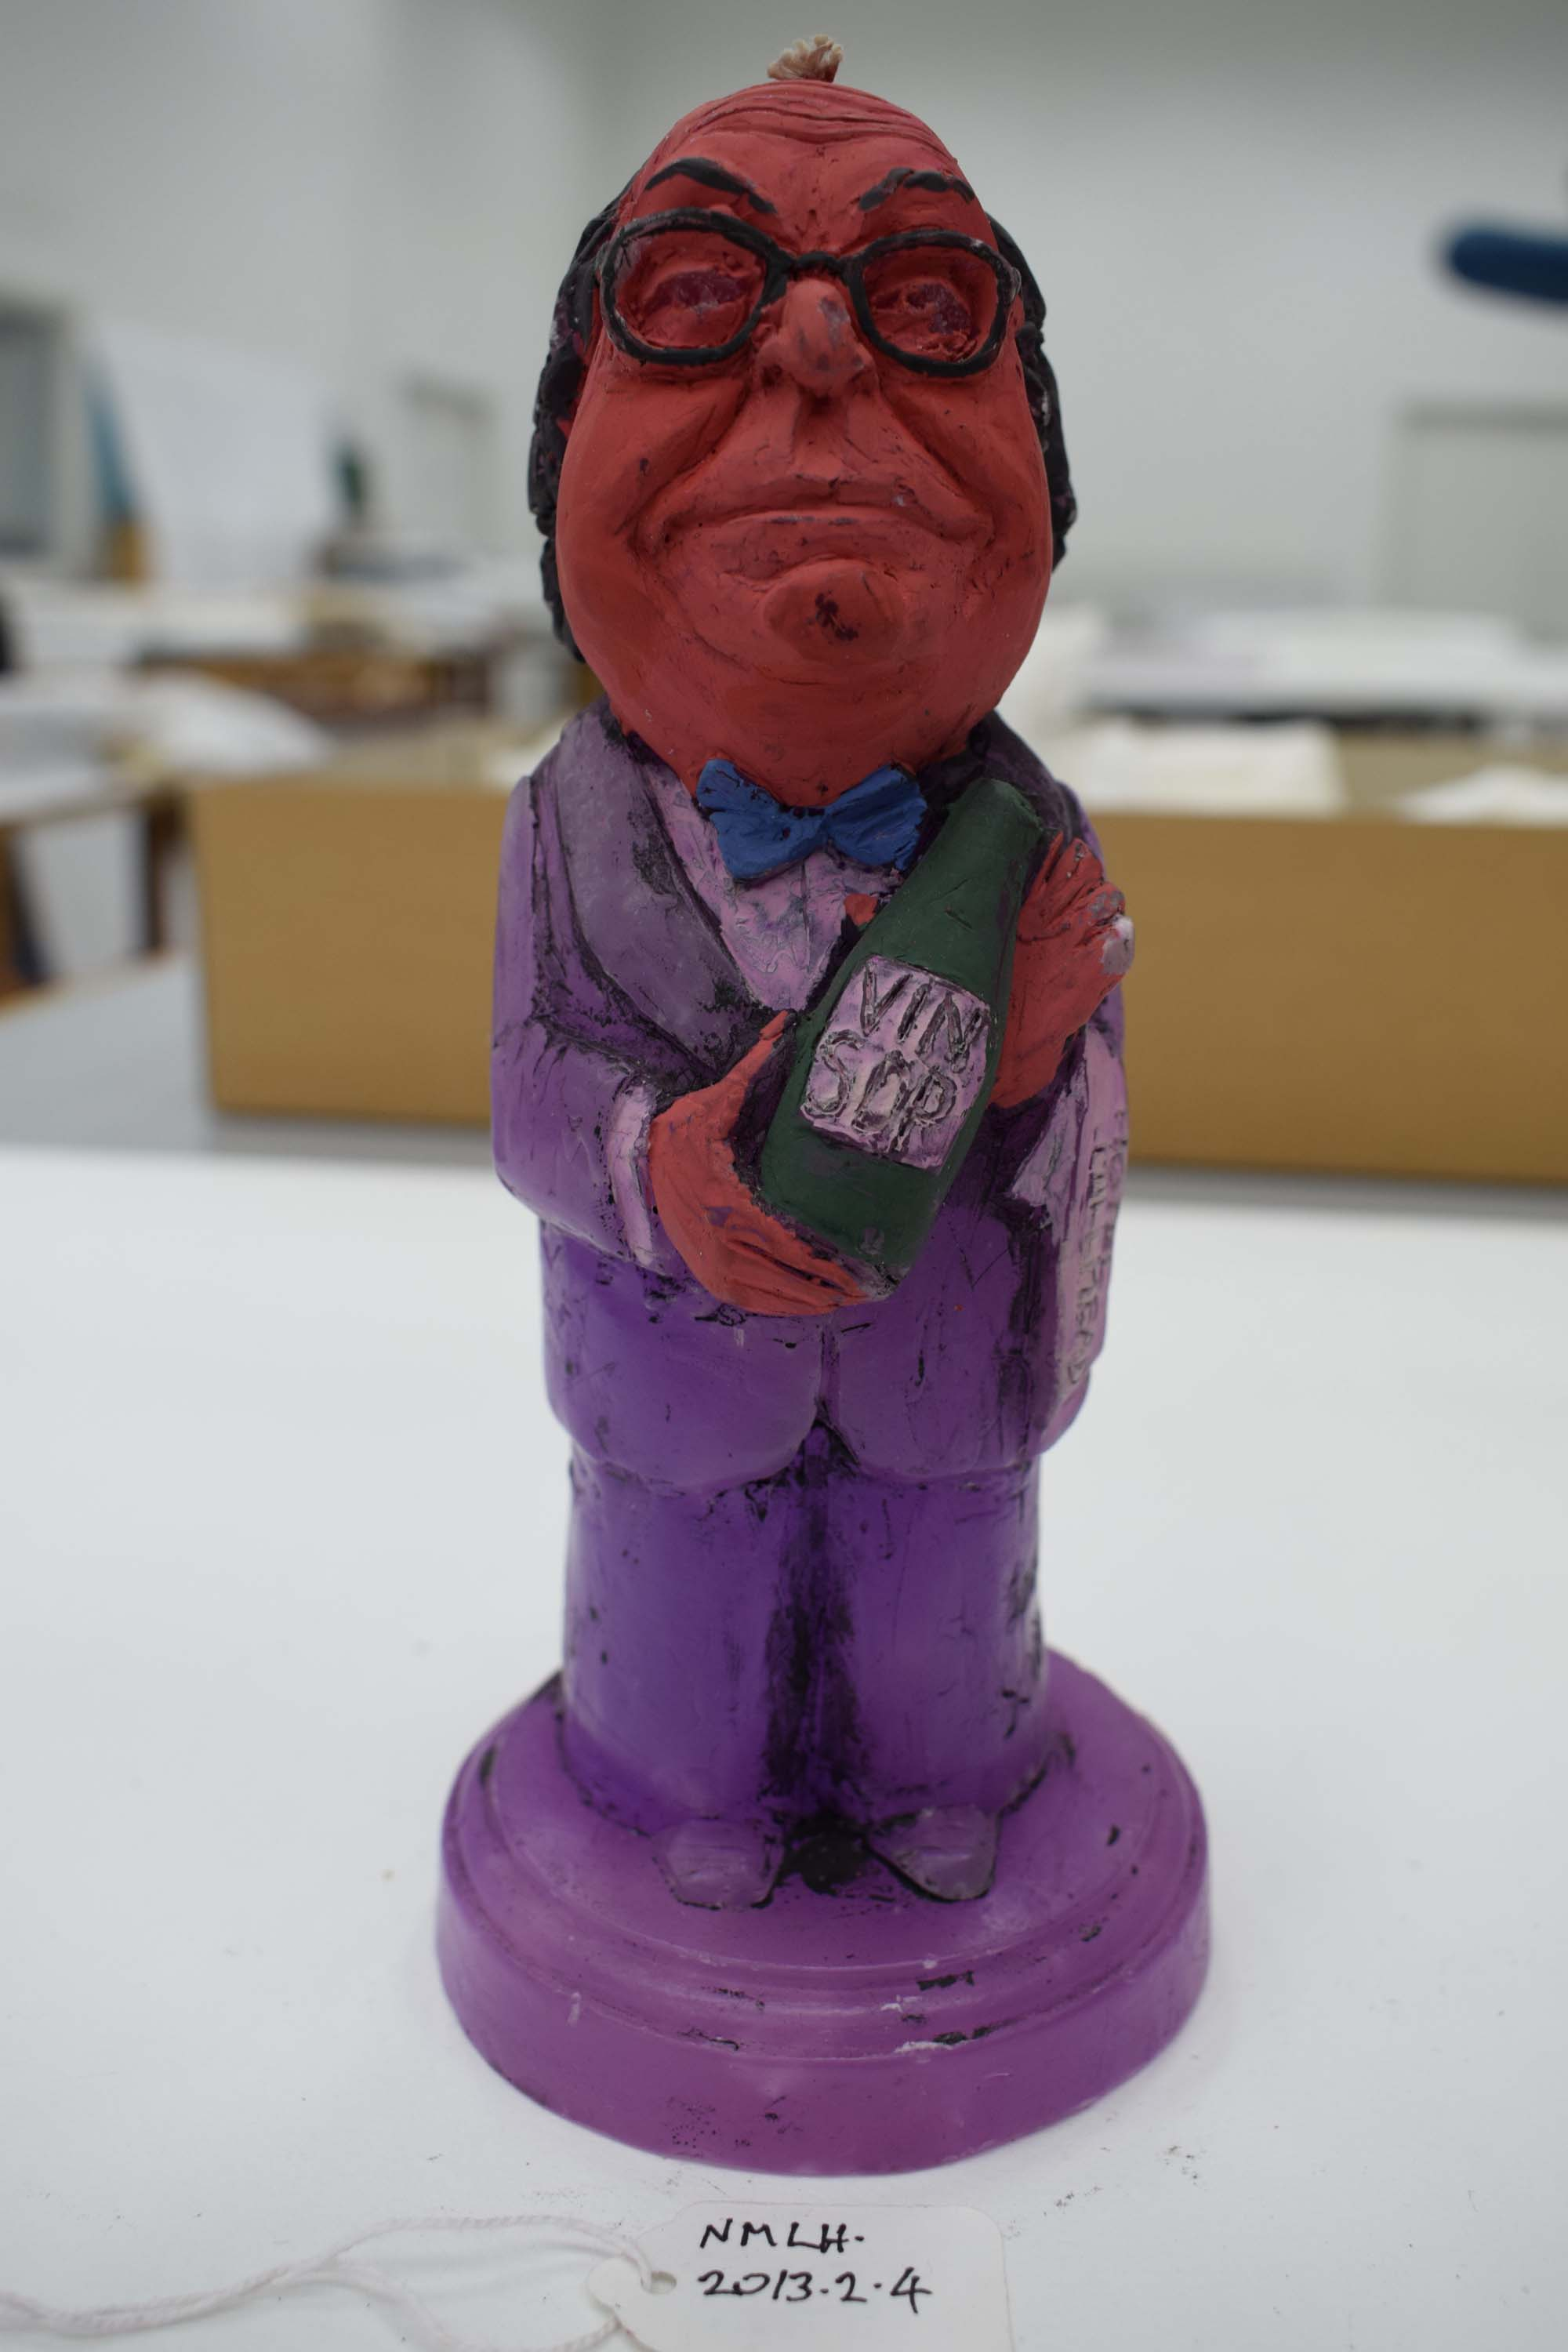 a photo of a wax candle of a politician holding a bottle of wine